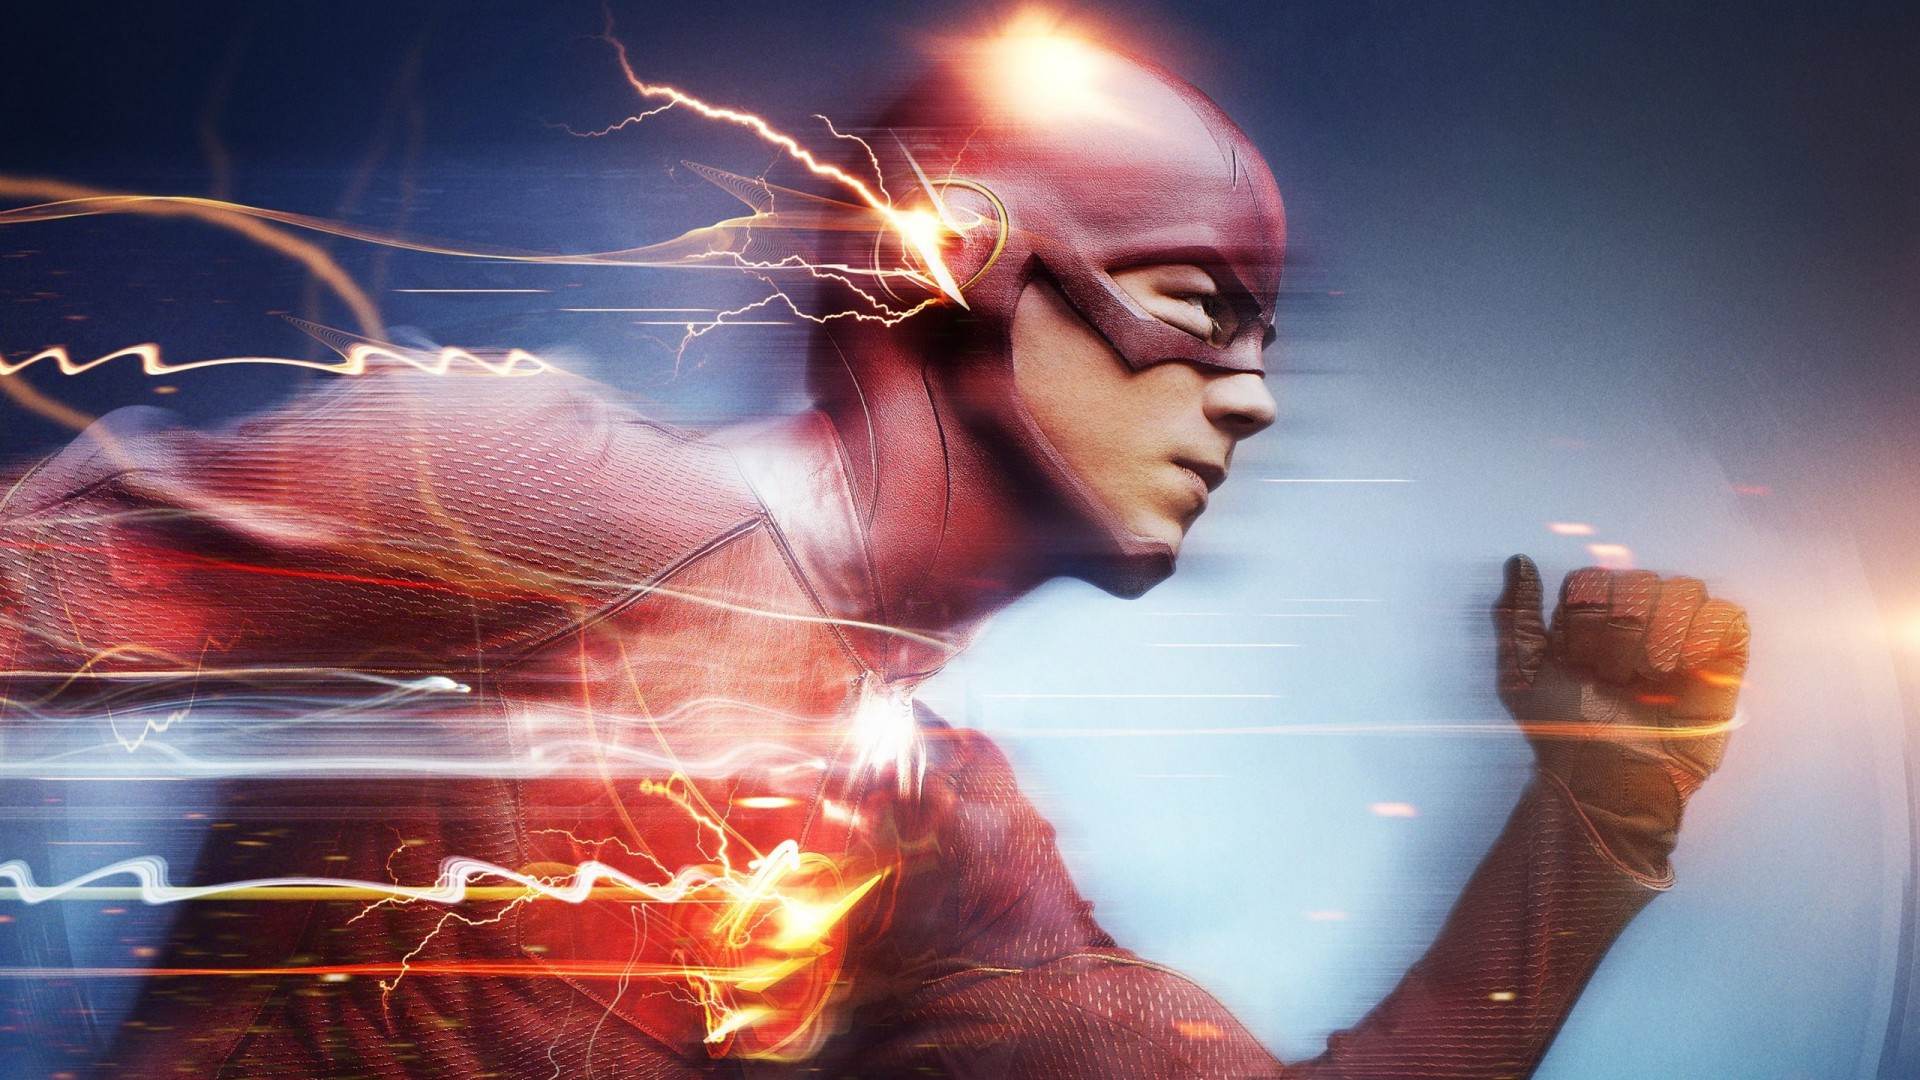 Creative Wallpapers For Iphone X Barry Allen The Flash Wallpapers Hd Wallpapers Id 13970